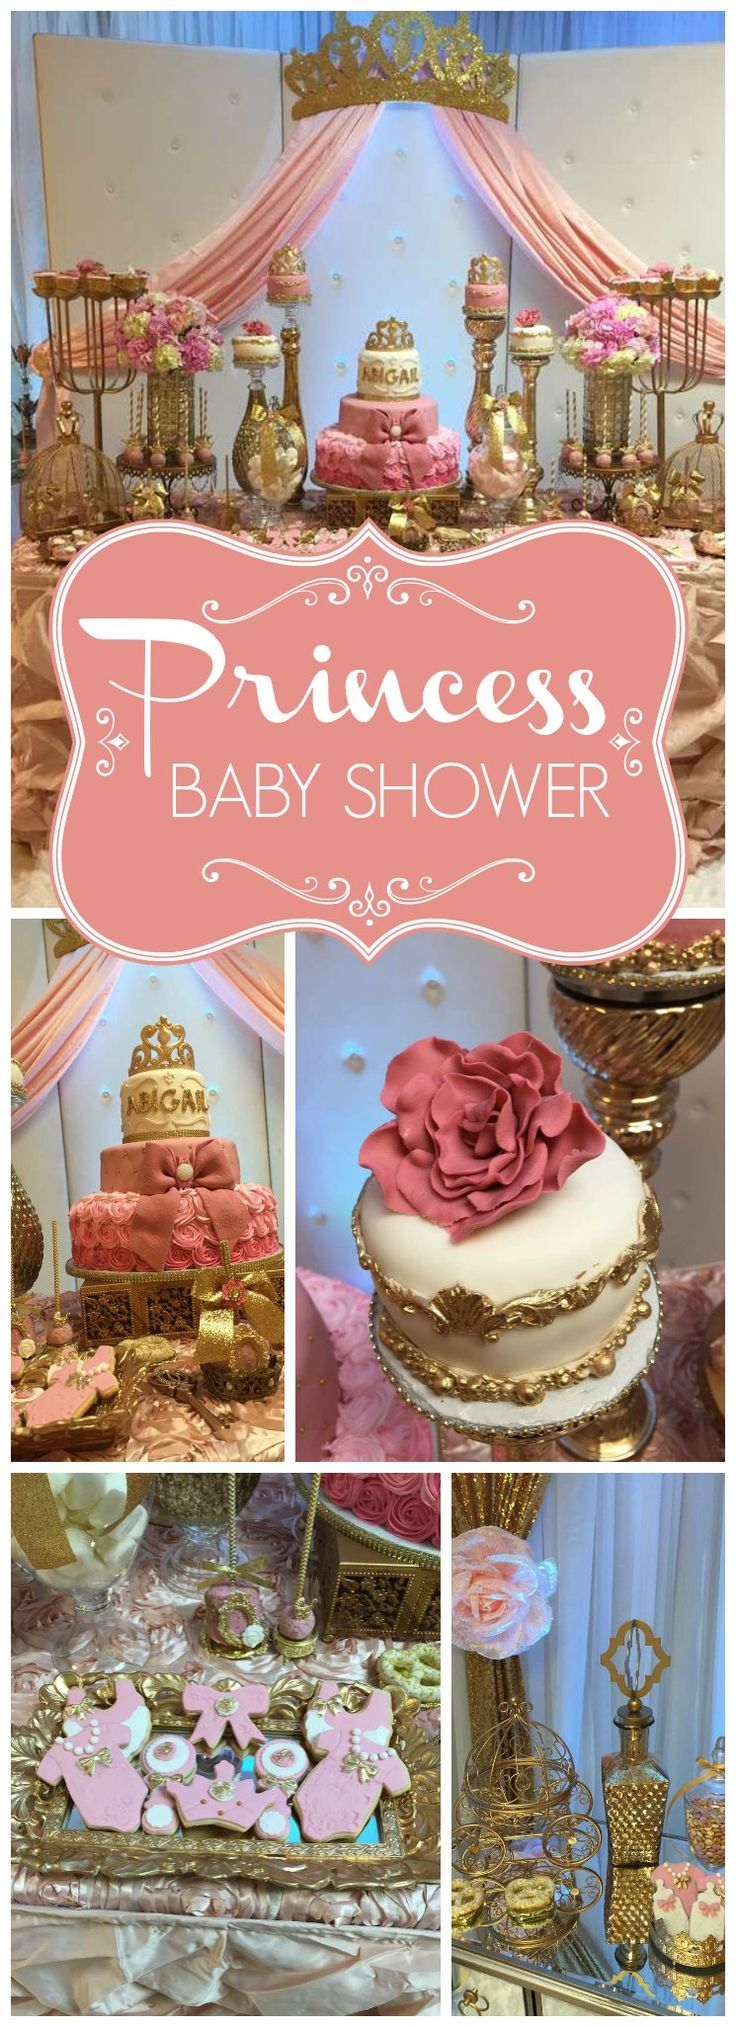 Such a pretty princess baby shower today!